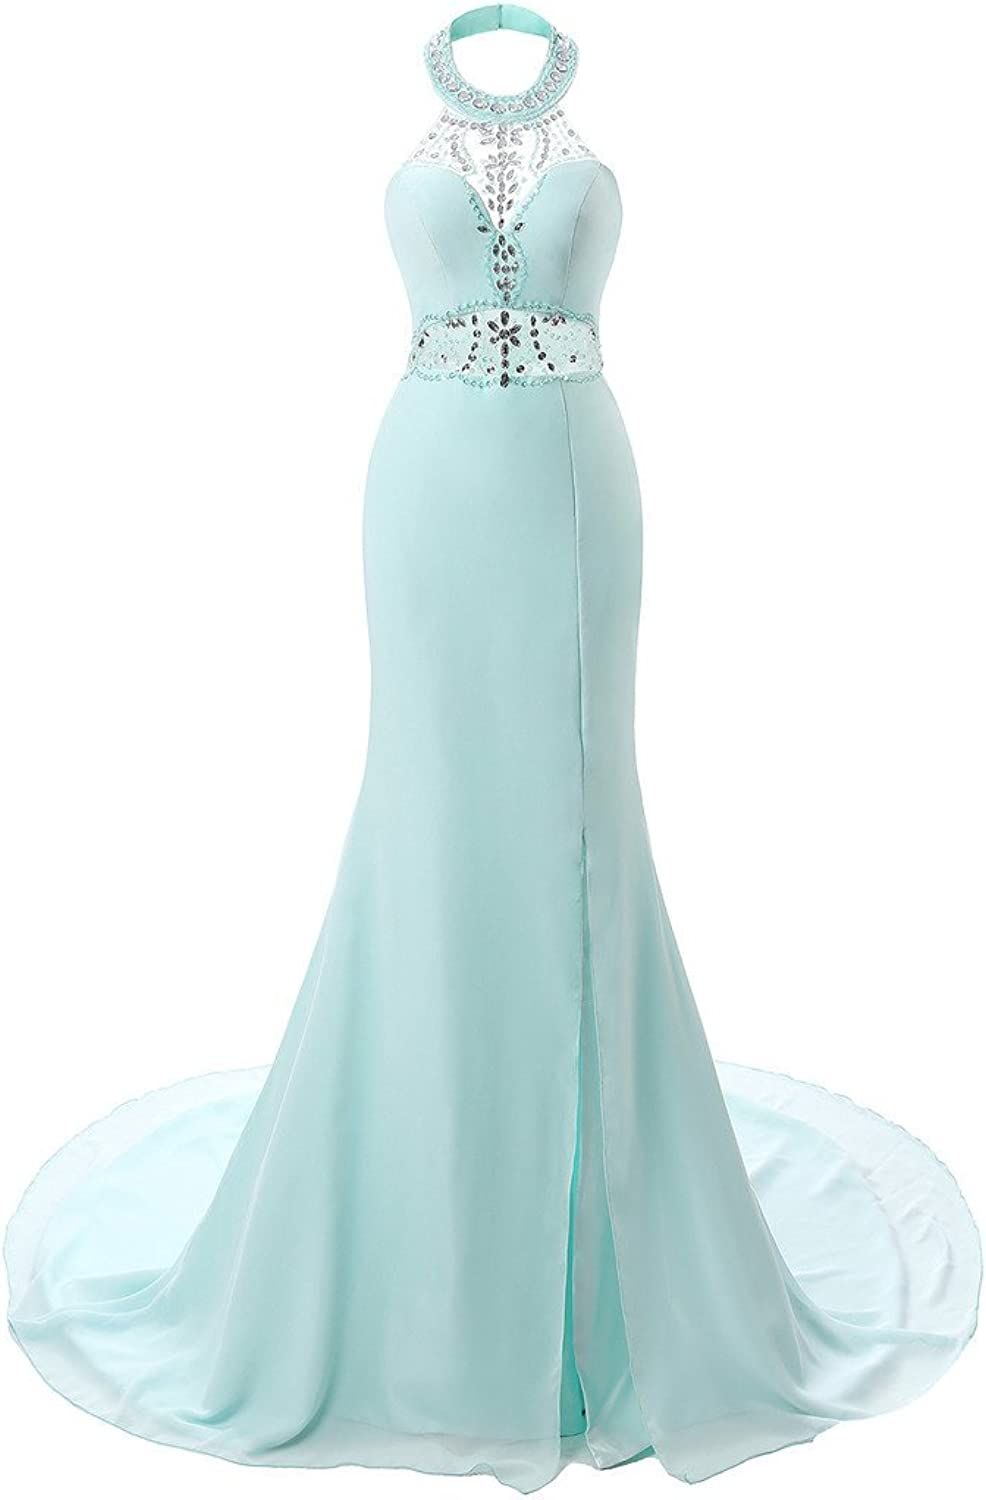 BessWedding Sexy Women Full Length Collar Sleeveless Beaded Aline Party Dresses